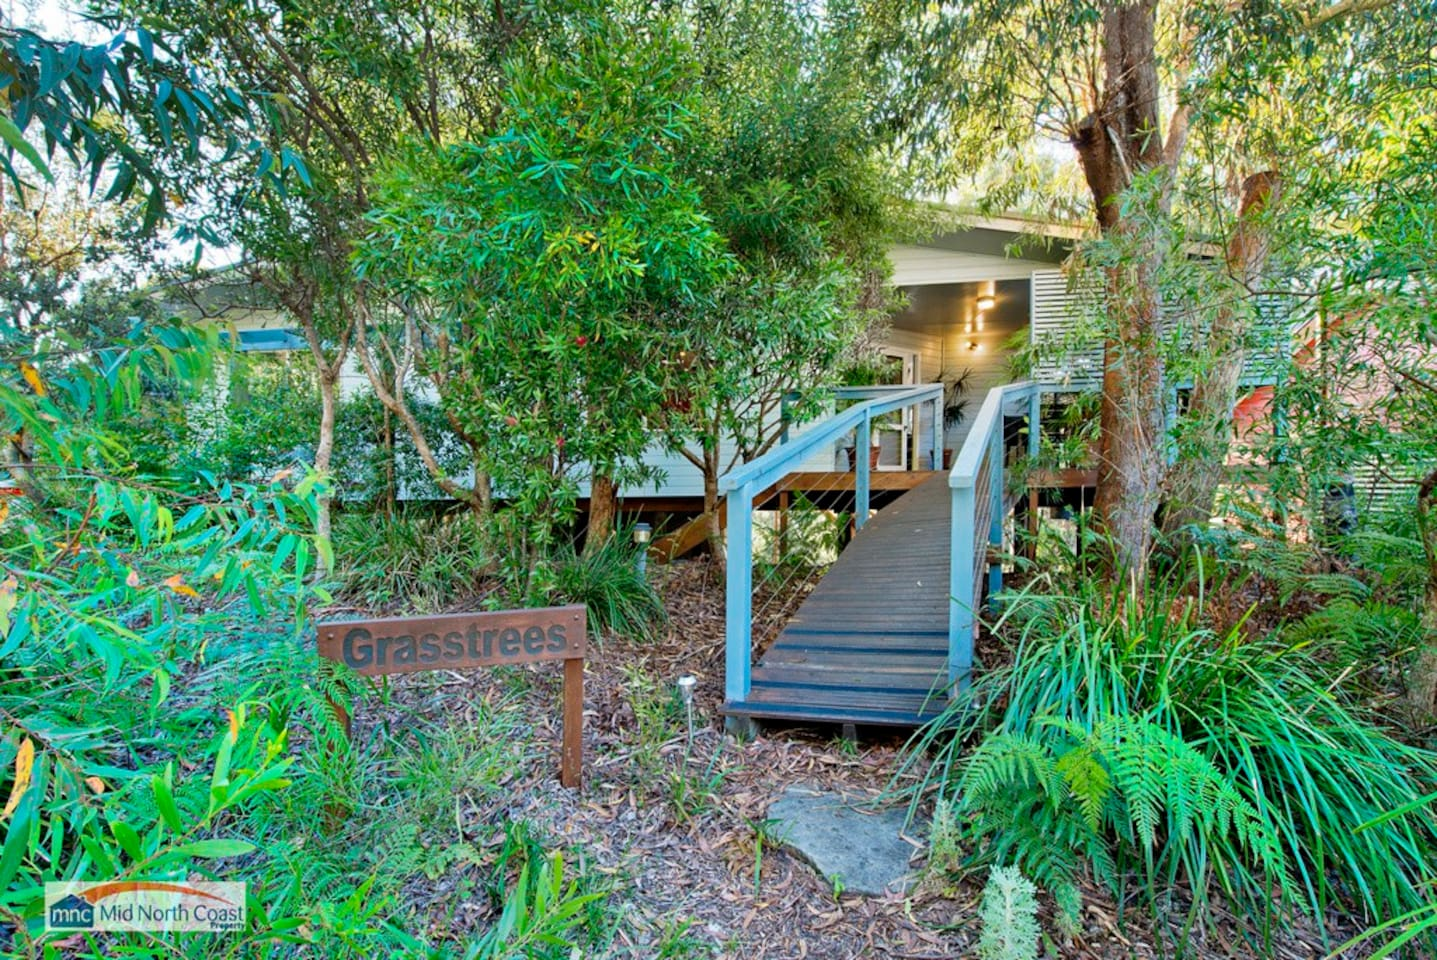 A tranquil paradise, set in a bushland estate.  Just 200m from an uncrowded beach and close to the Camden Haven River - a great place to recharge your batteries or simply enjoy time with family and friends.